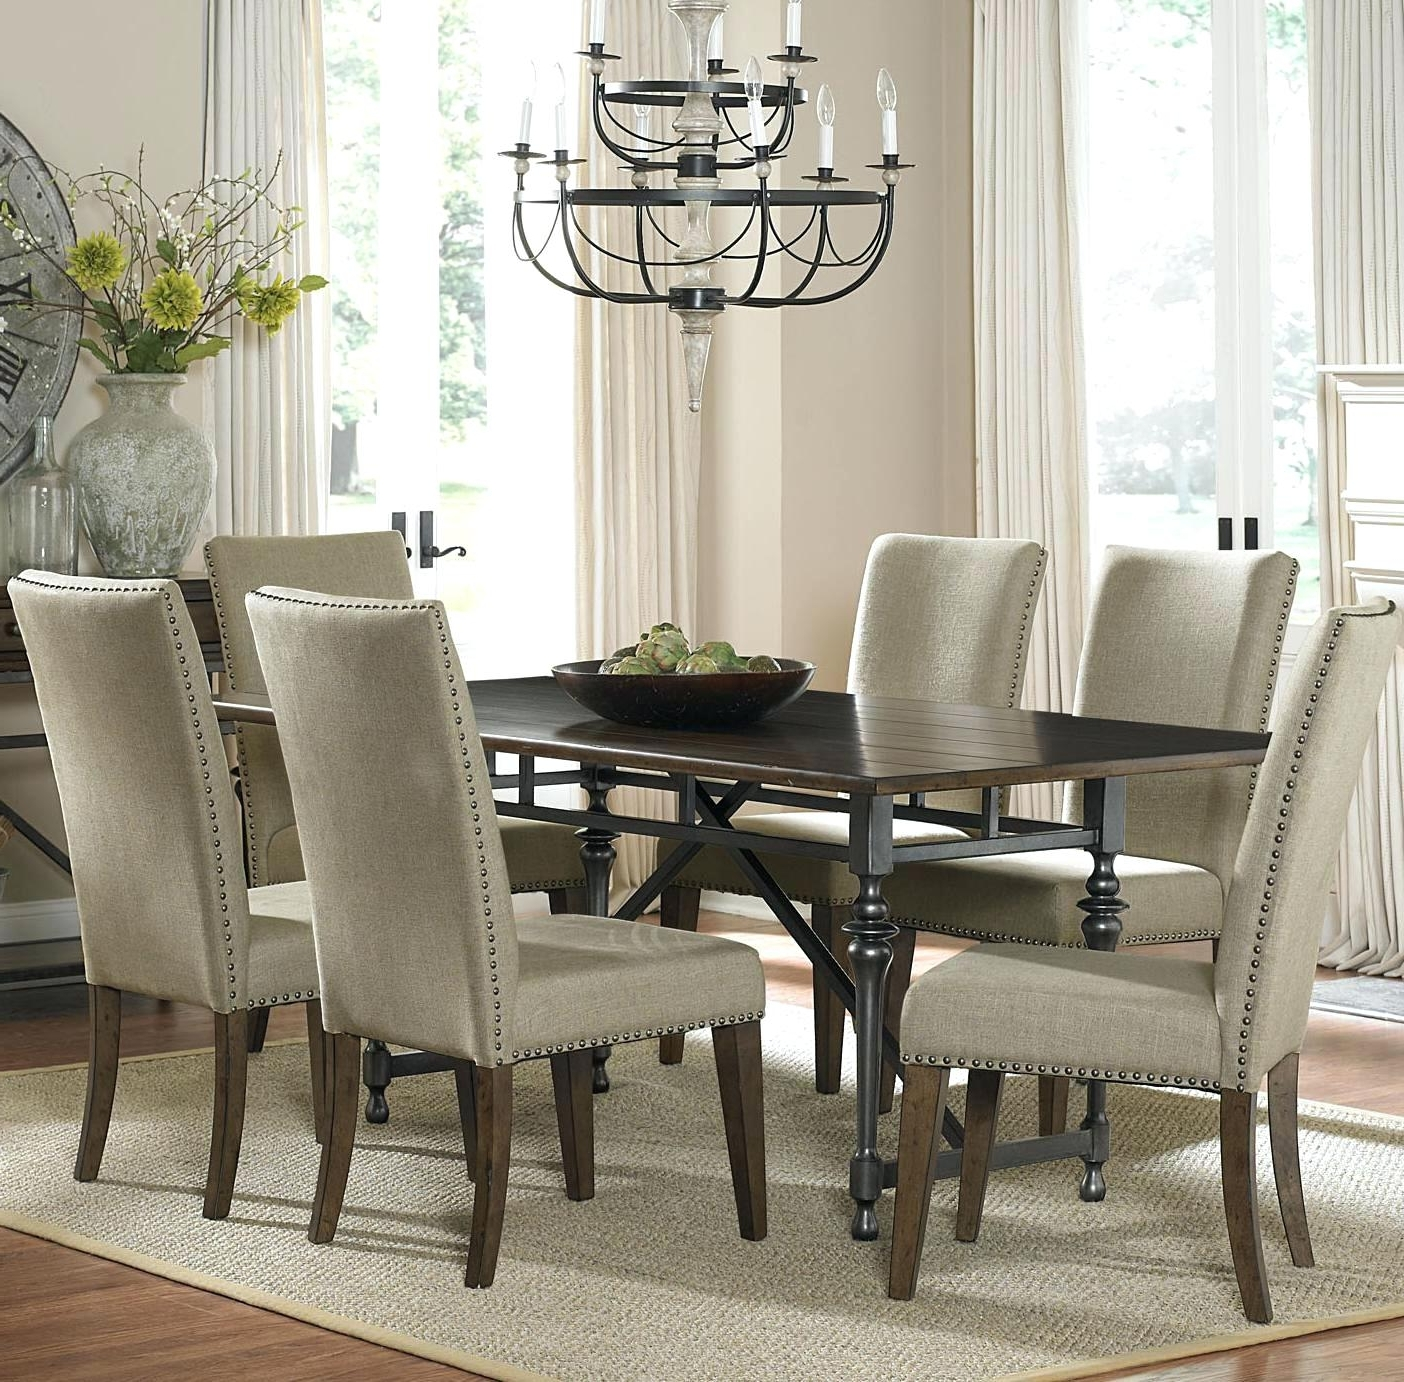 Preferred Dining Room Table With Upholstered Chairs – Dining Room Designs Within Jaxon 7 Piece Rectangle Dining Sets With Upholstered Chairs (View 19 of 25)